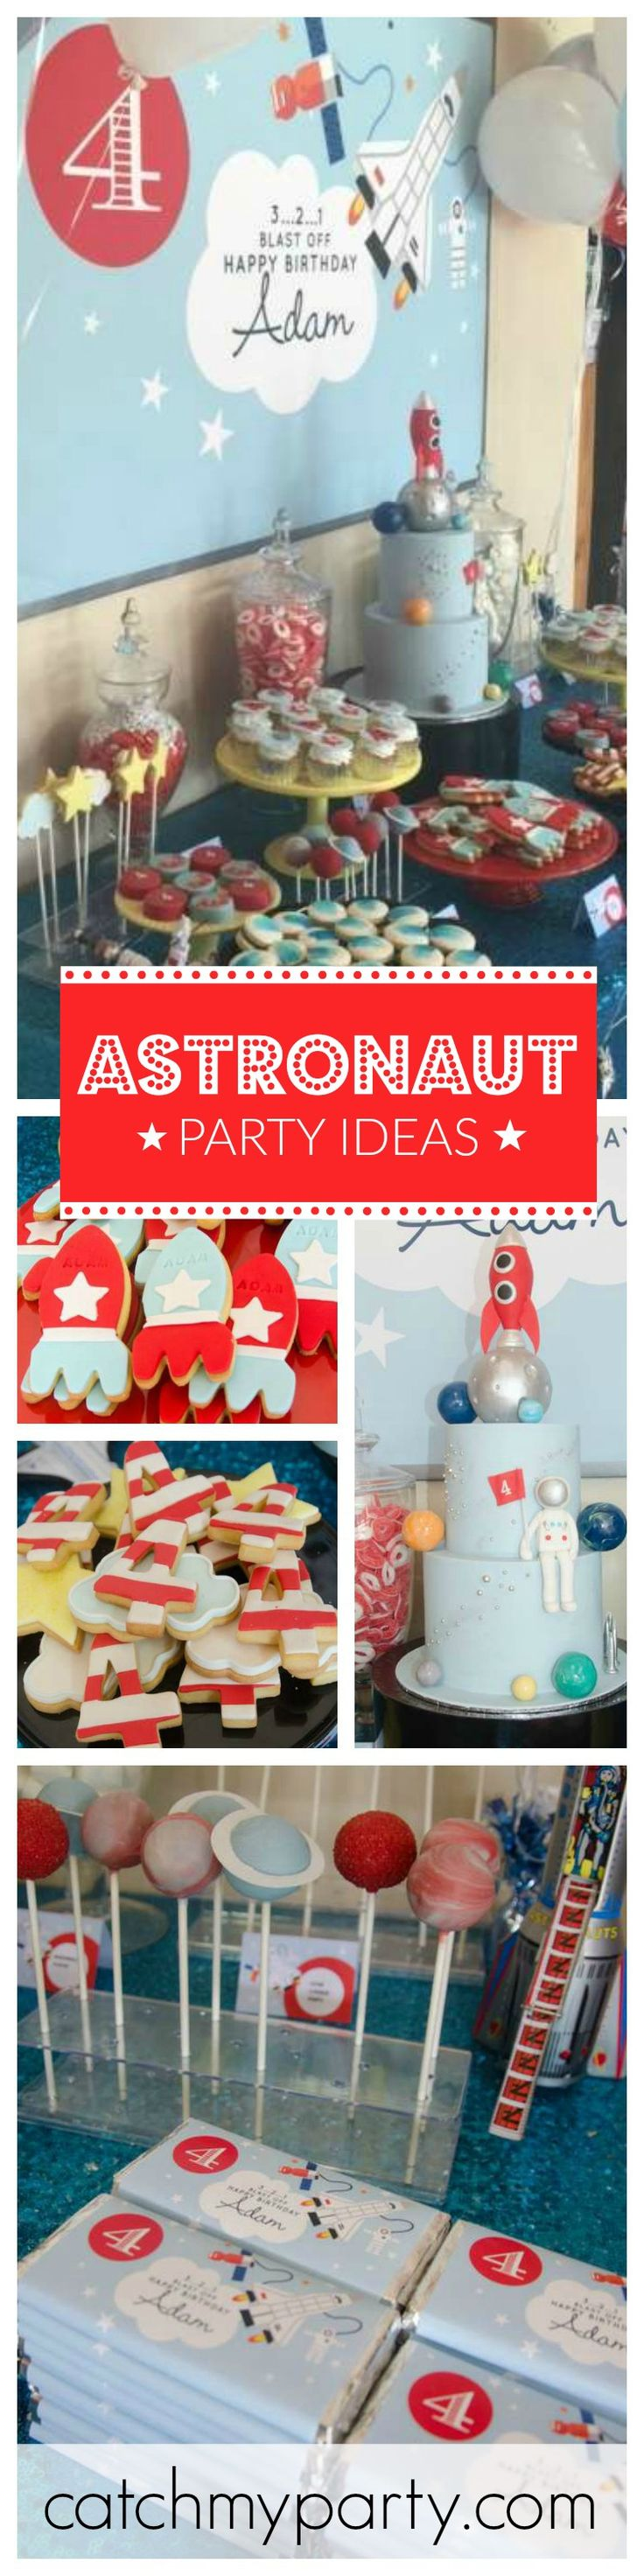 Blast Off into Outer Space with this cute Astronaut Birthday Party! Just how adorable are the Planet Cake Pops?!